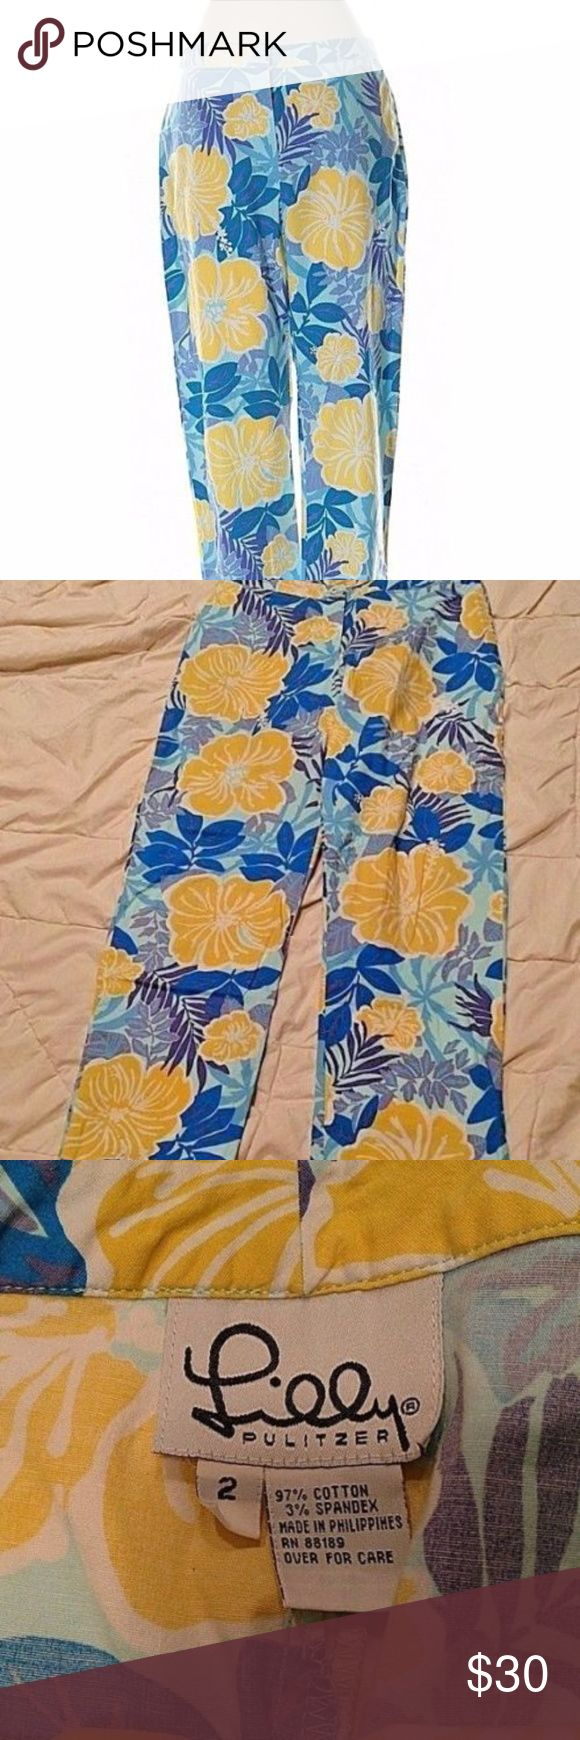 """Lilly Pulitzer Blue Yellow Floral Khaki Capris Lilly Pulitzer blue Capri pants with yellow flowers. Size 2. Cotton spandex blend. Gently used with no flaws.  Flat Lay Waist: 13"""" Rise: 9.5"""" Inseam: 24"""" Lilly Pulitzer Pants Capris"""